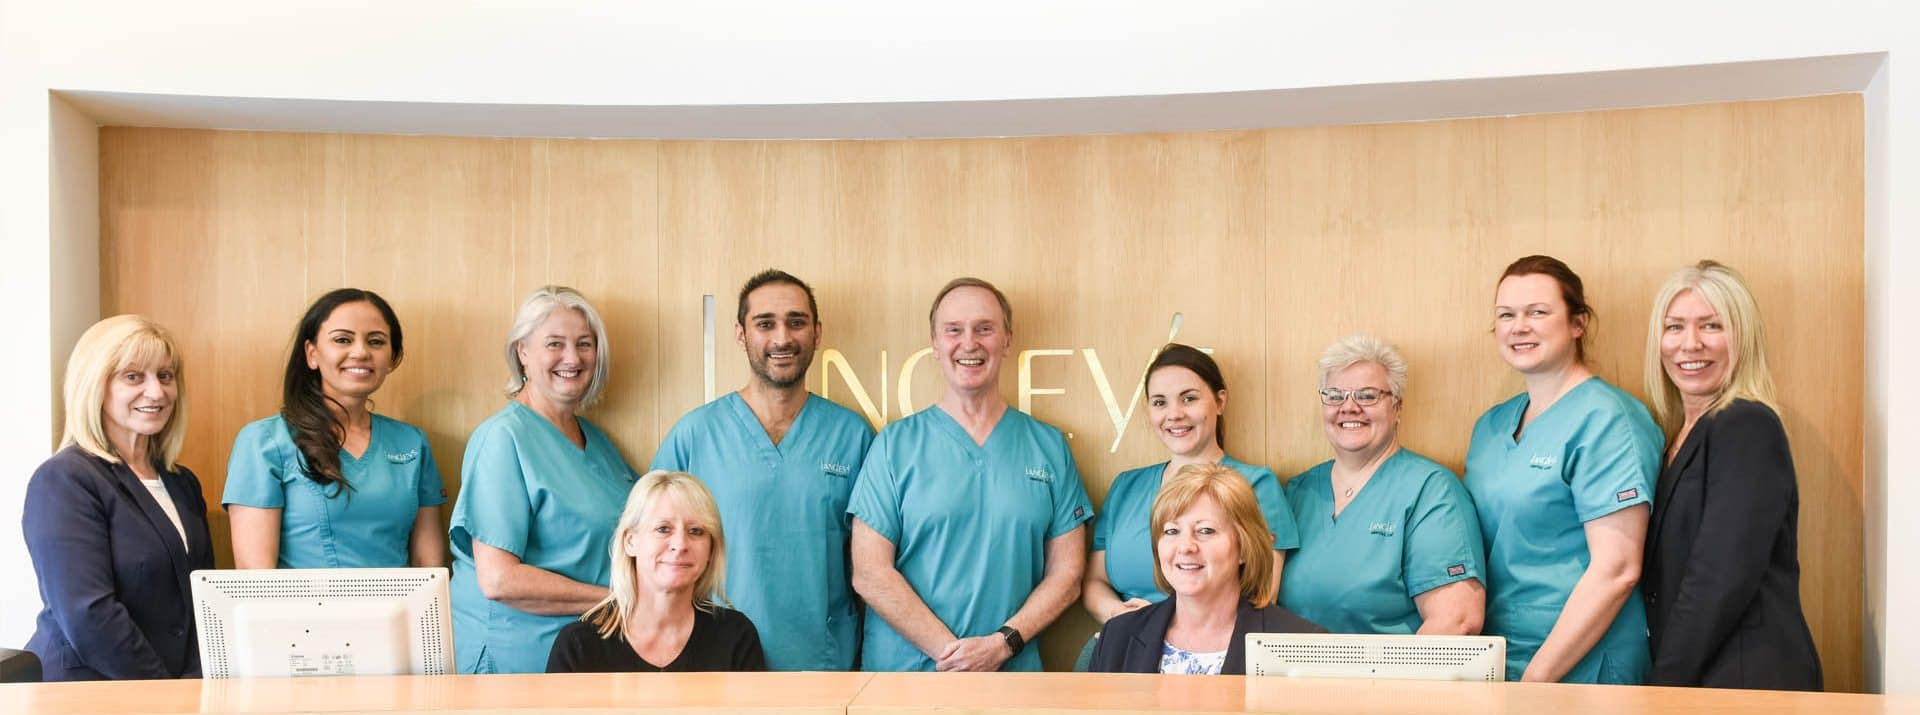 Langley's Team behind reception desk